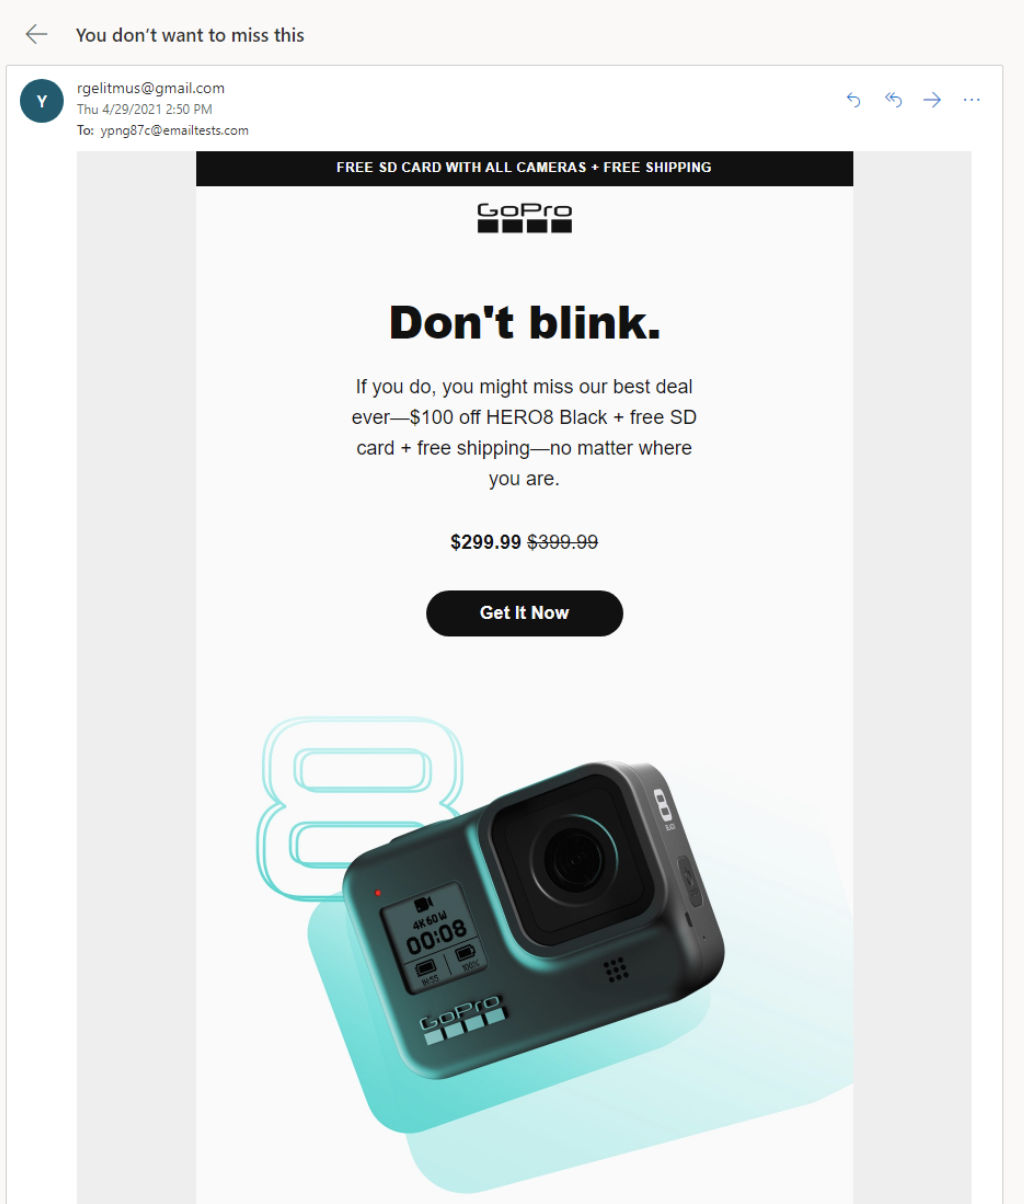 Email Marketing for Shopify: GoPro Example